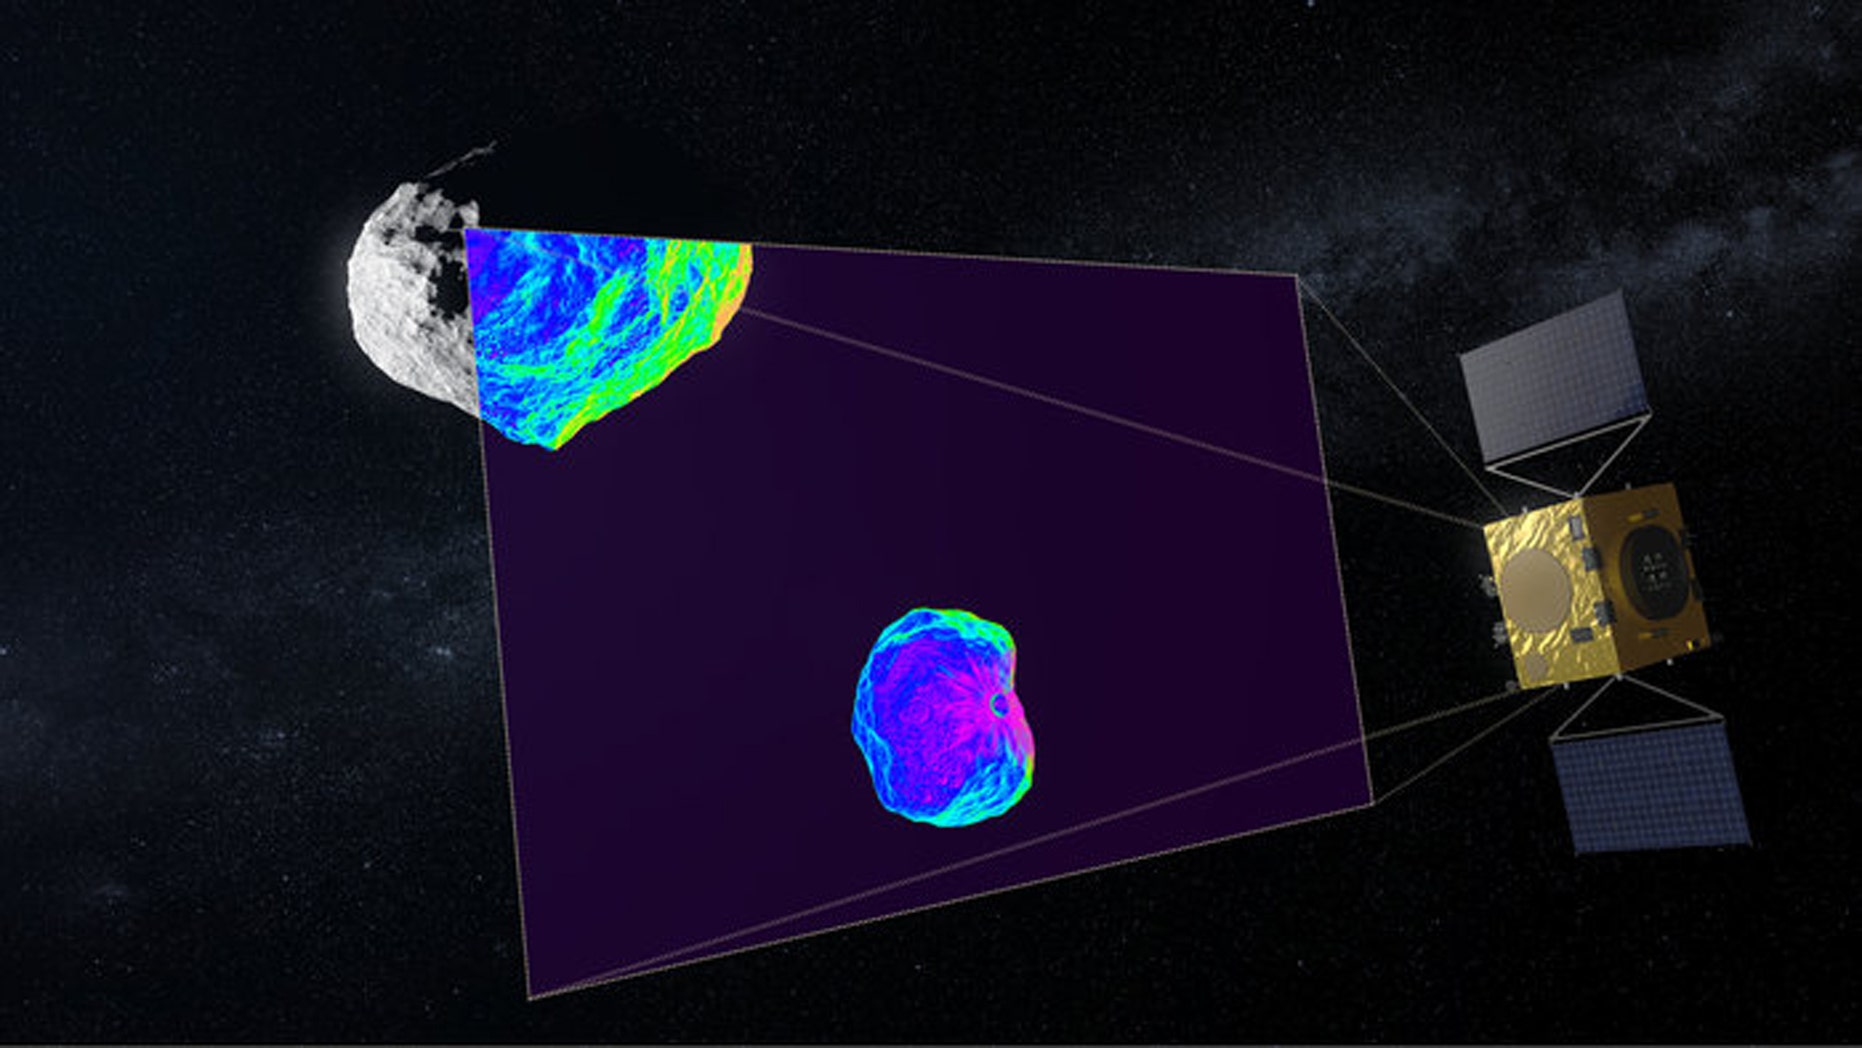 Hera uses infrared to scan the crater for impact. (Credit: ESA)